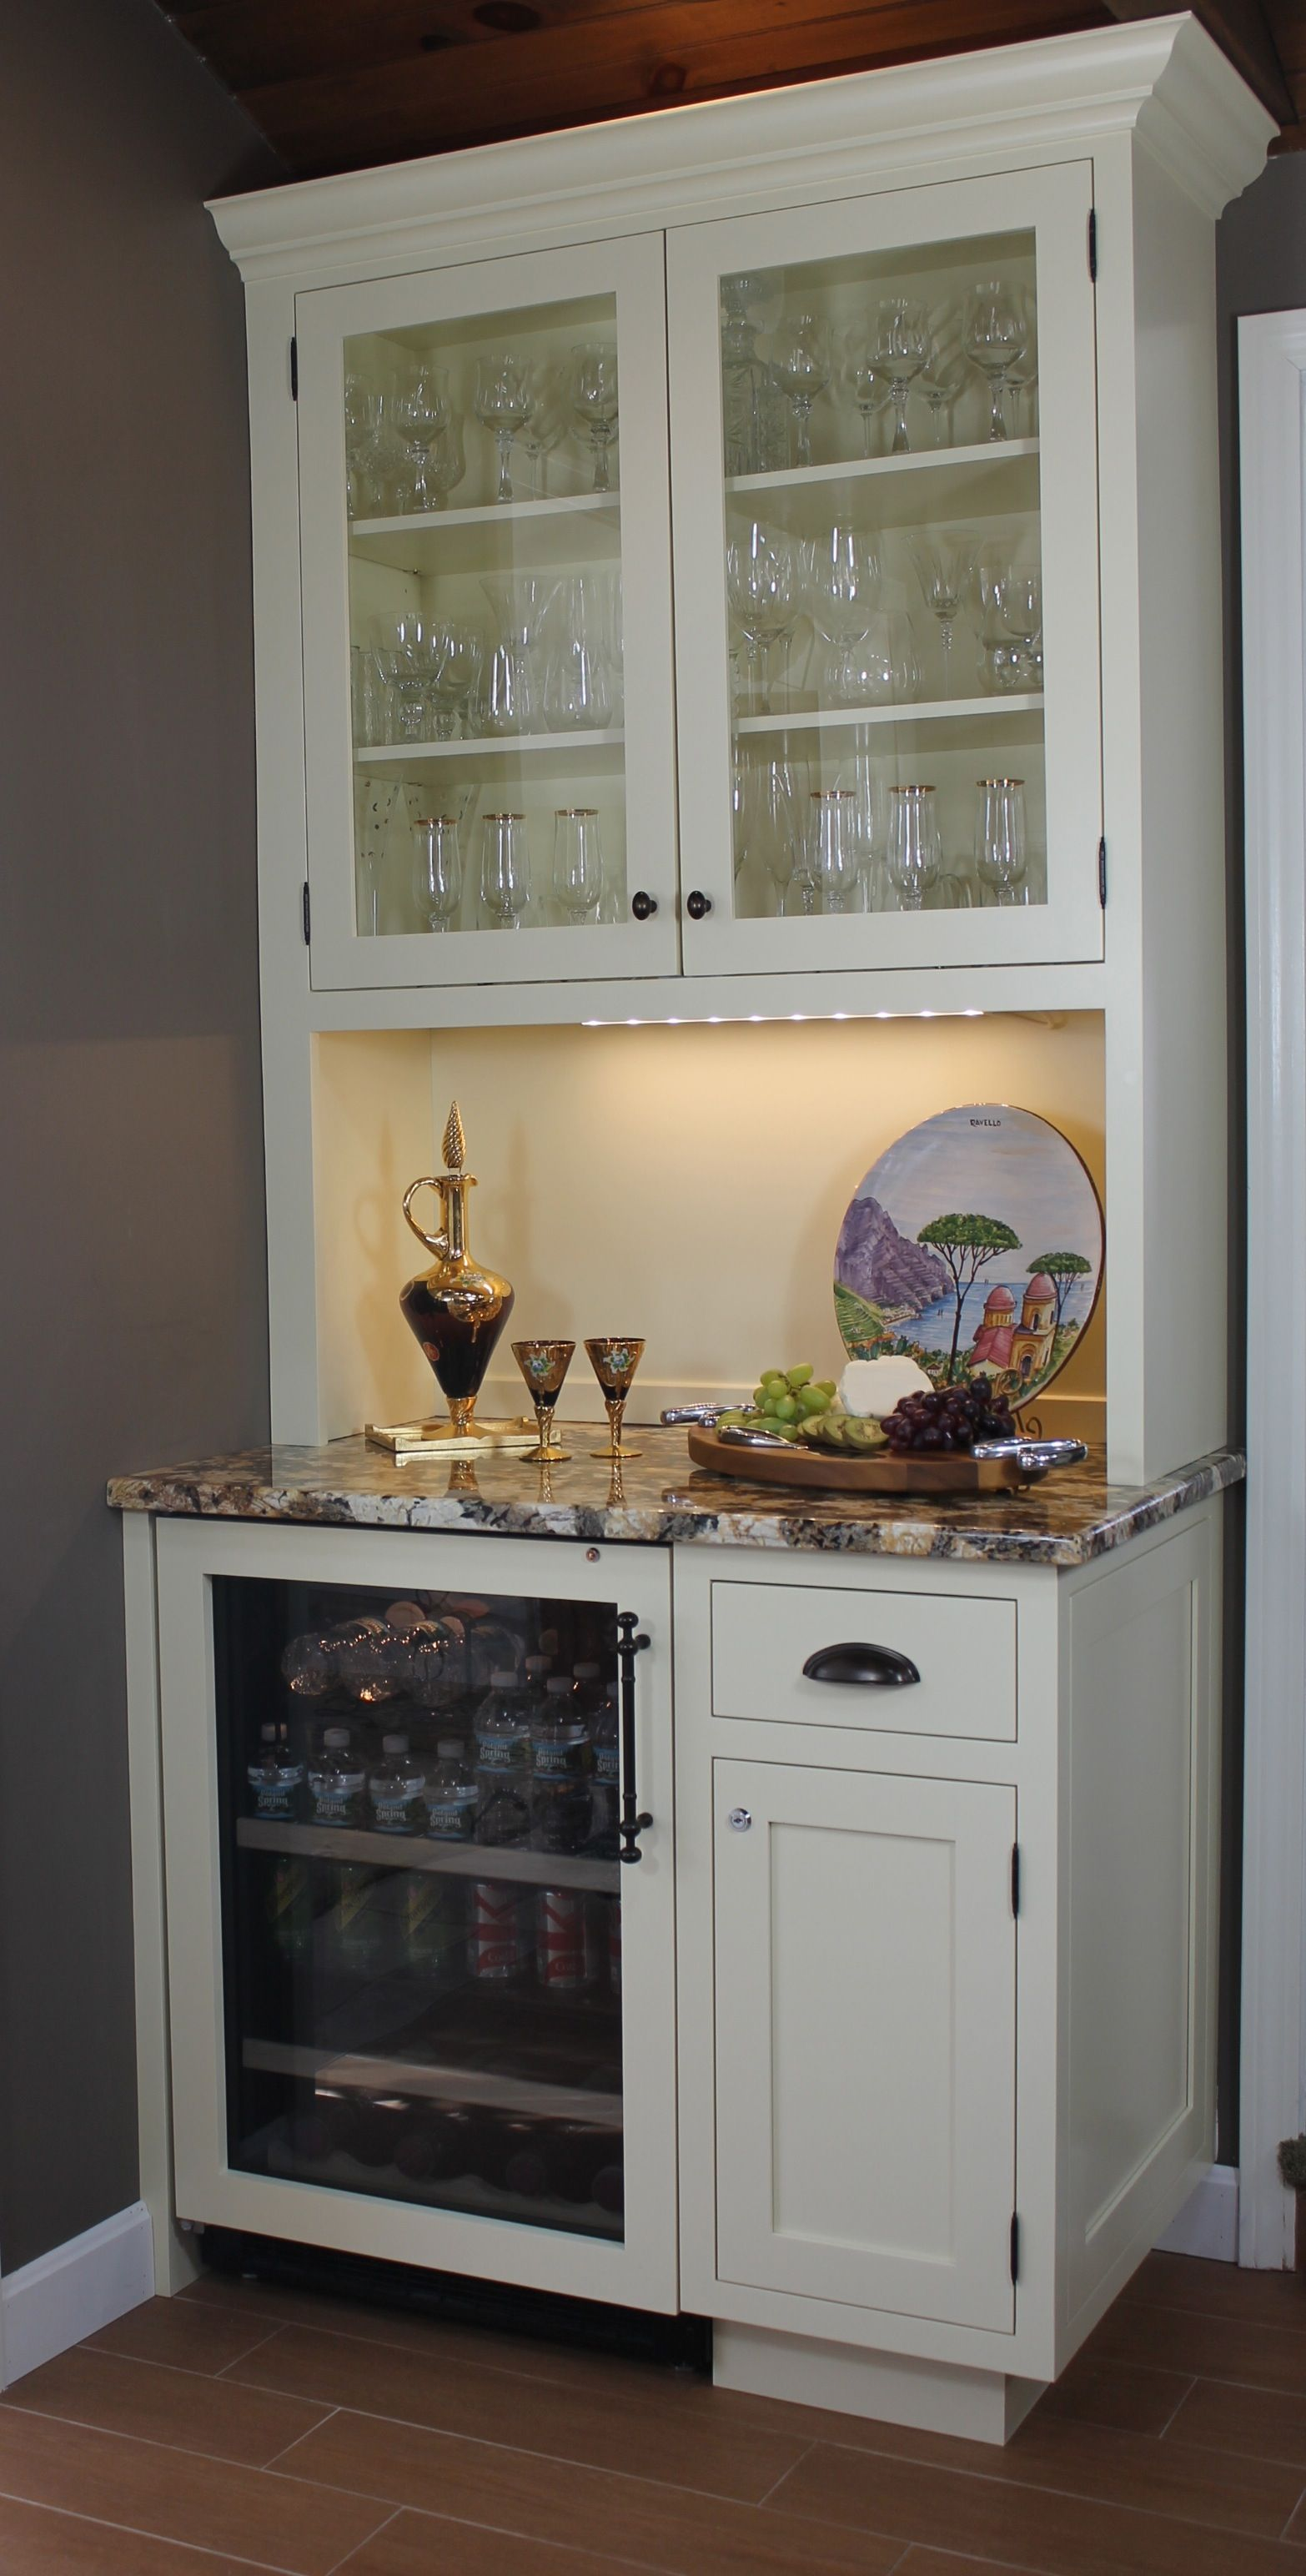 Glass door fridge kitchen - Kitchen Desk Converted To Wine Bar Google Search